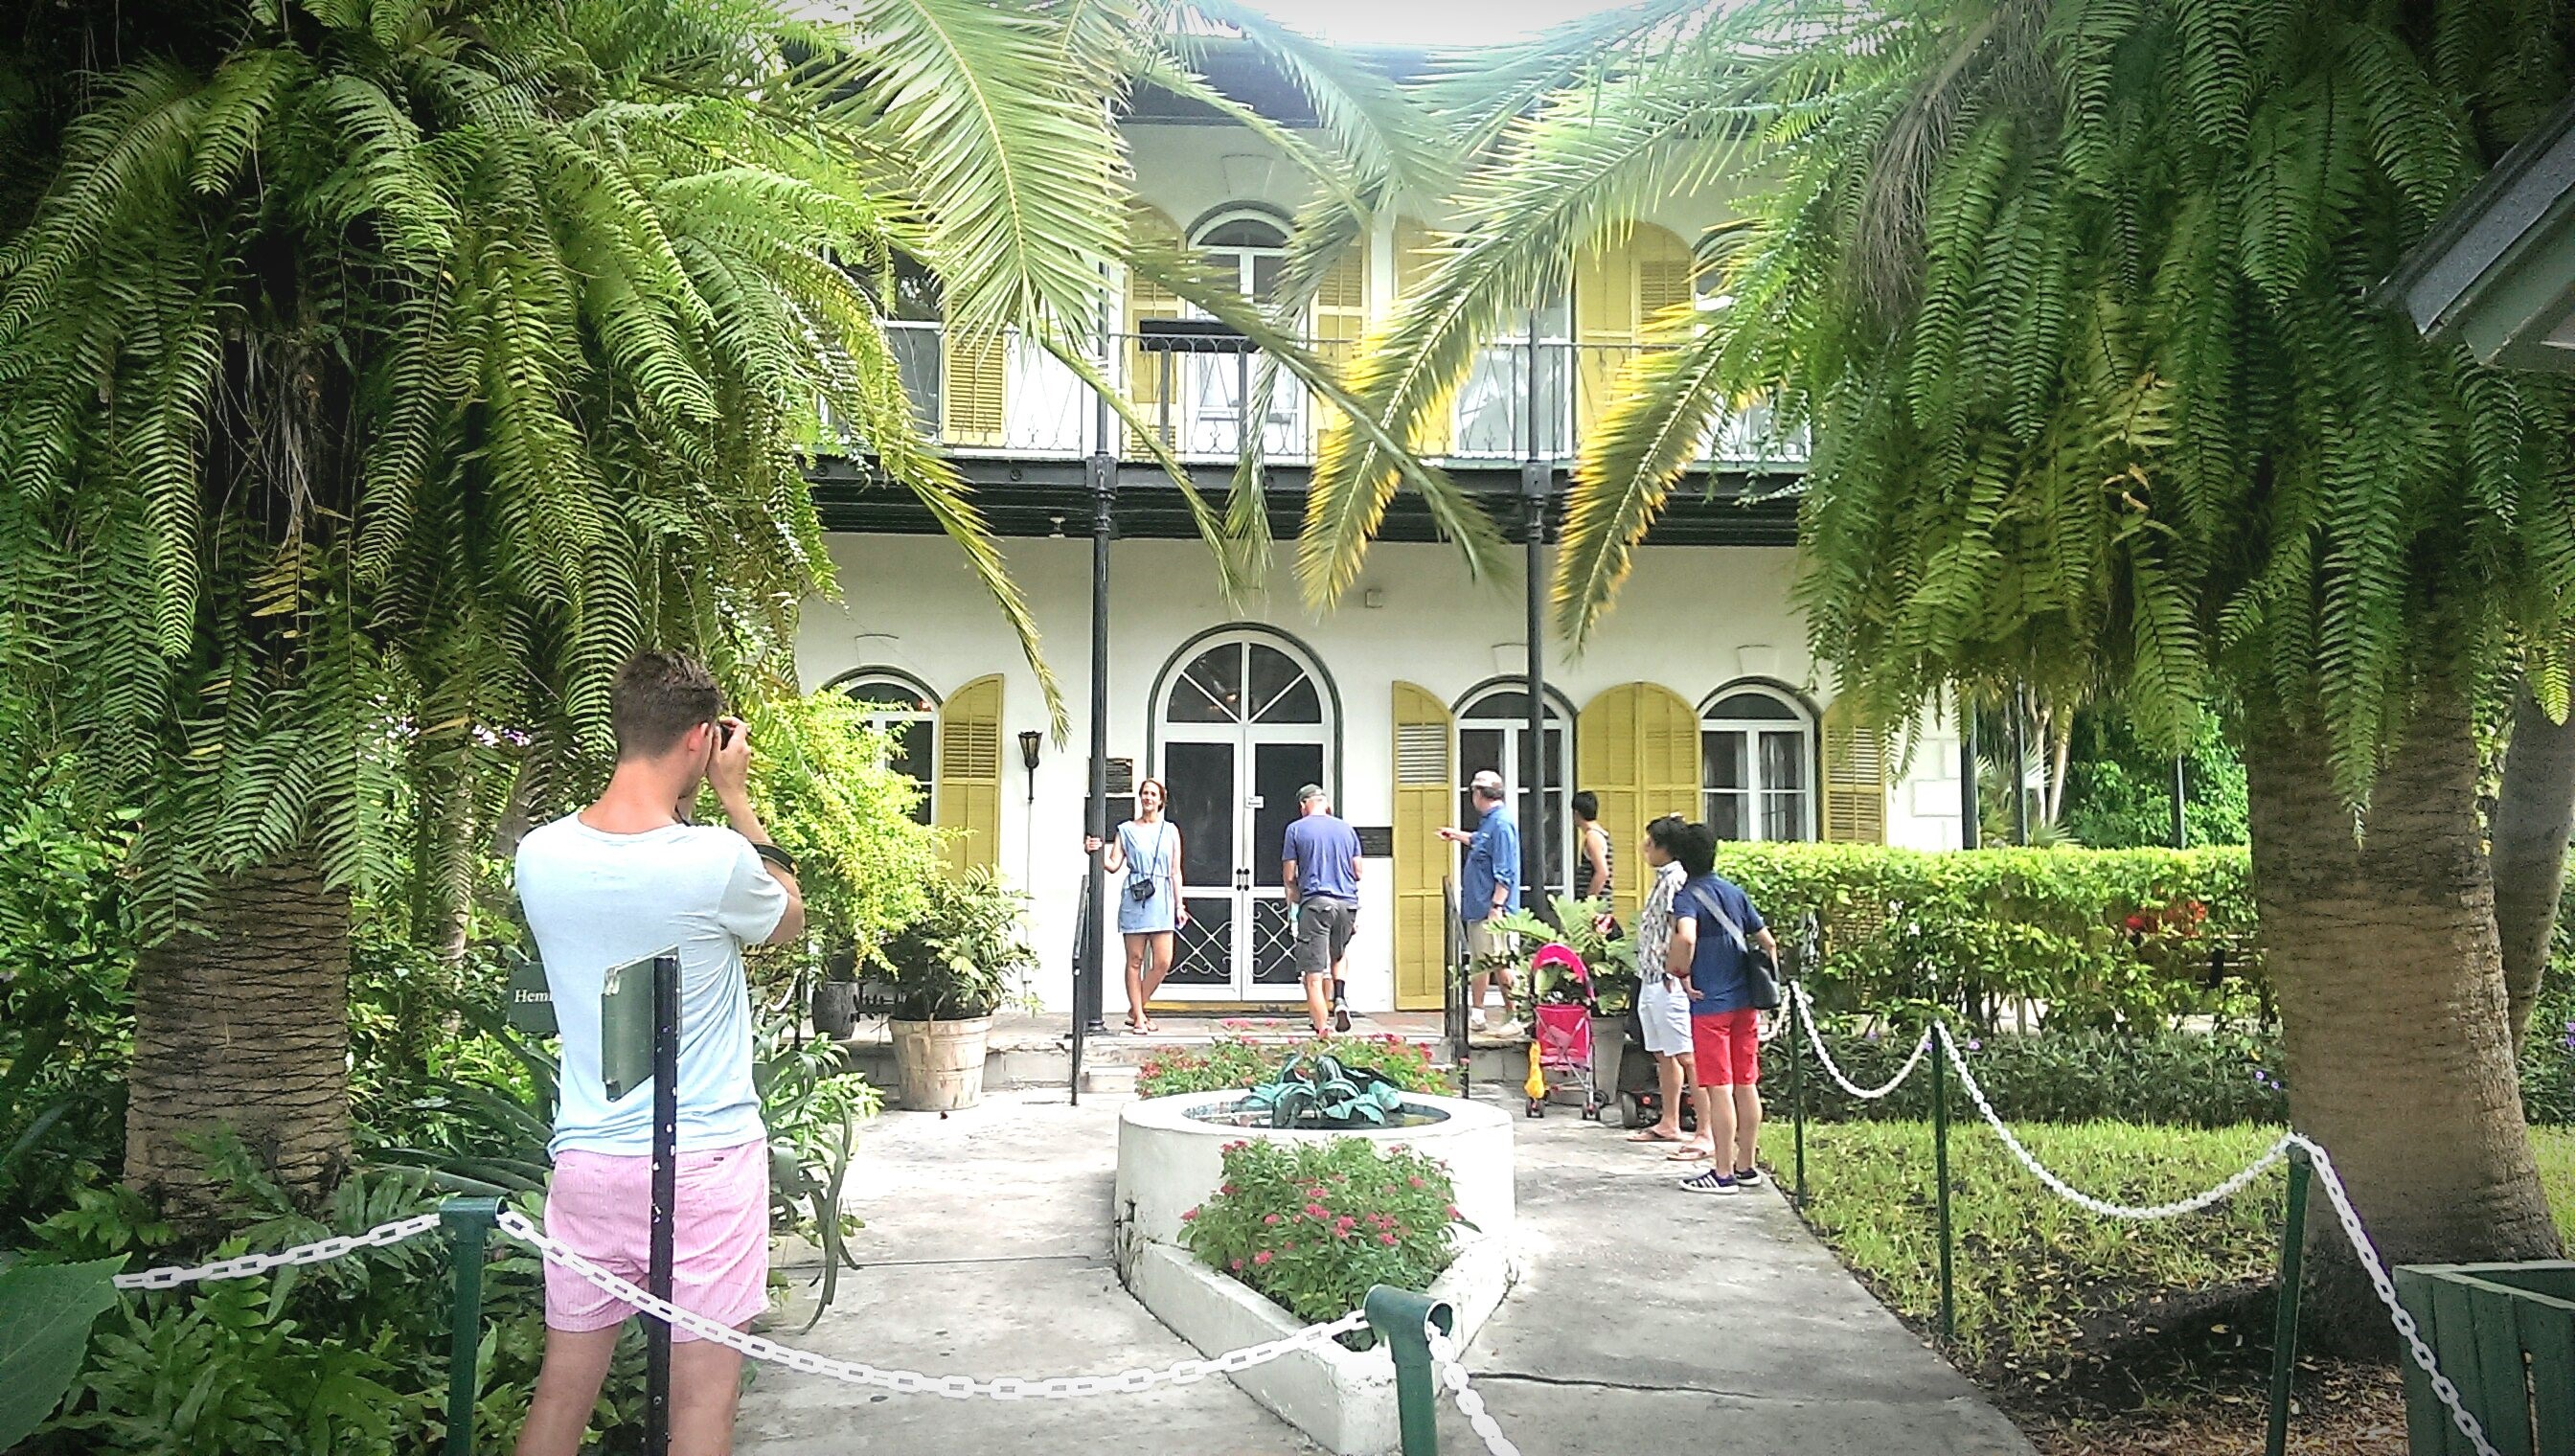 Carry It Like Harry - The Peculiarities of Key West